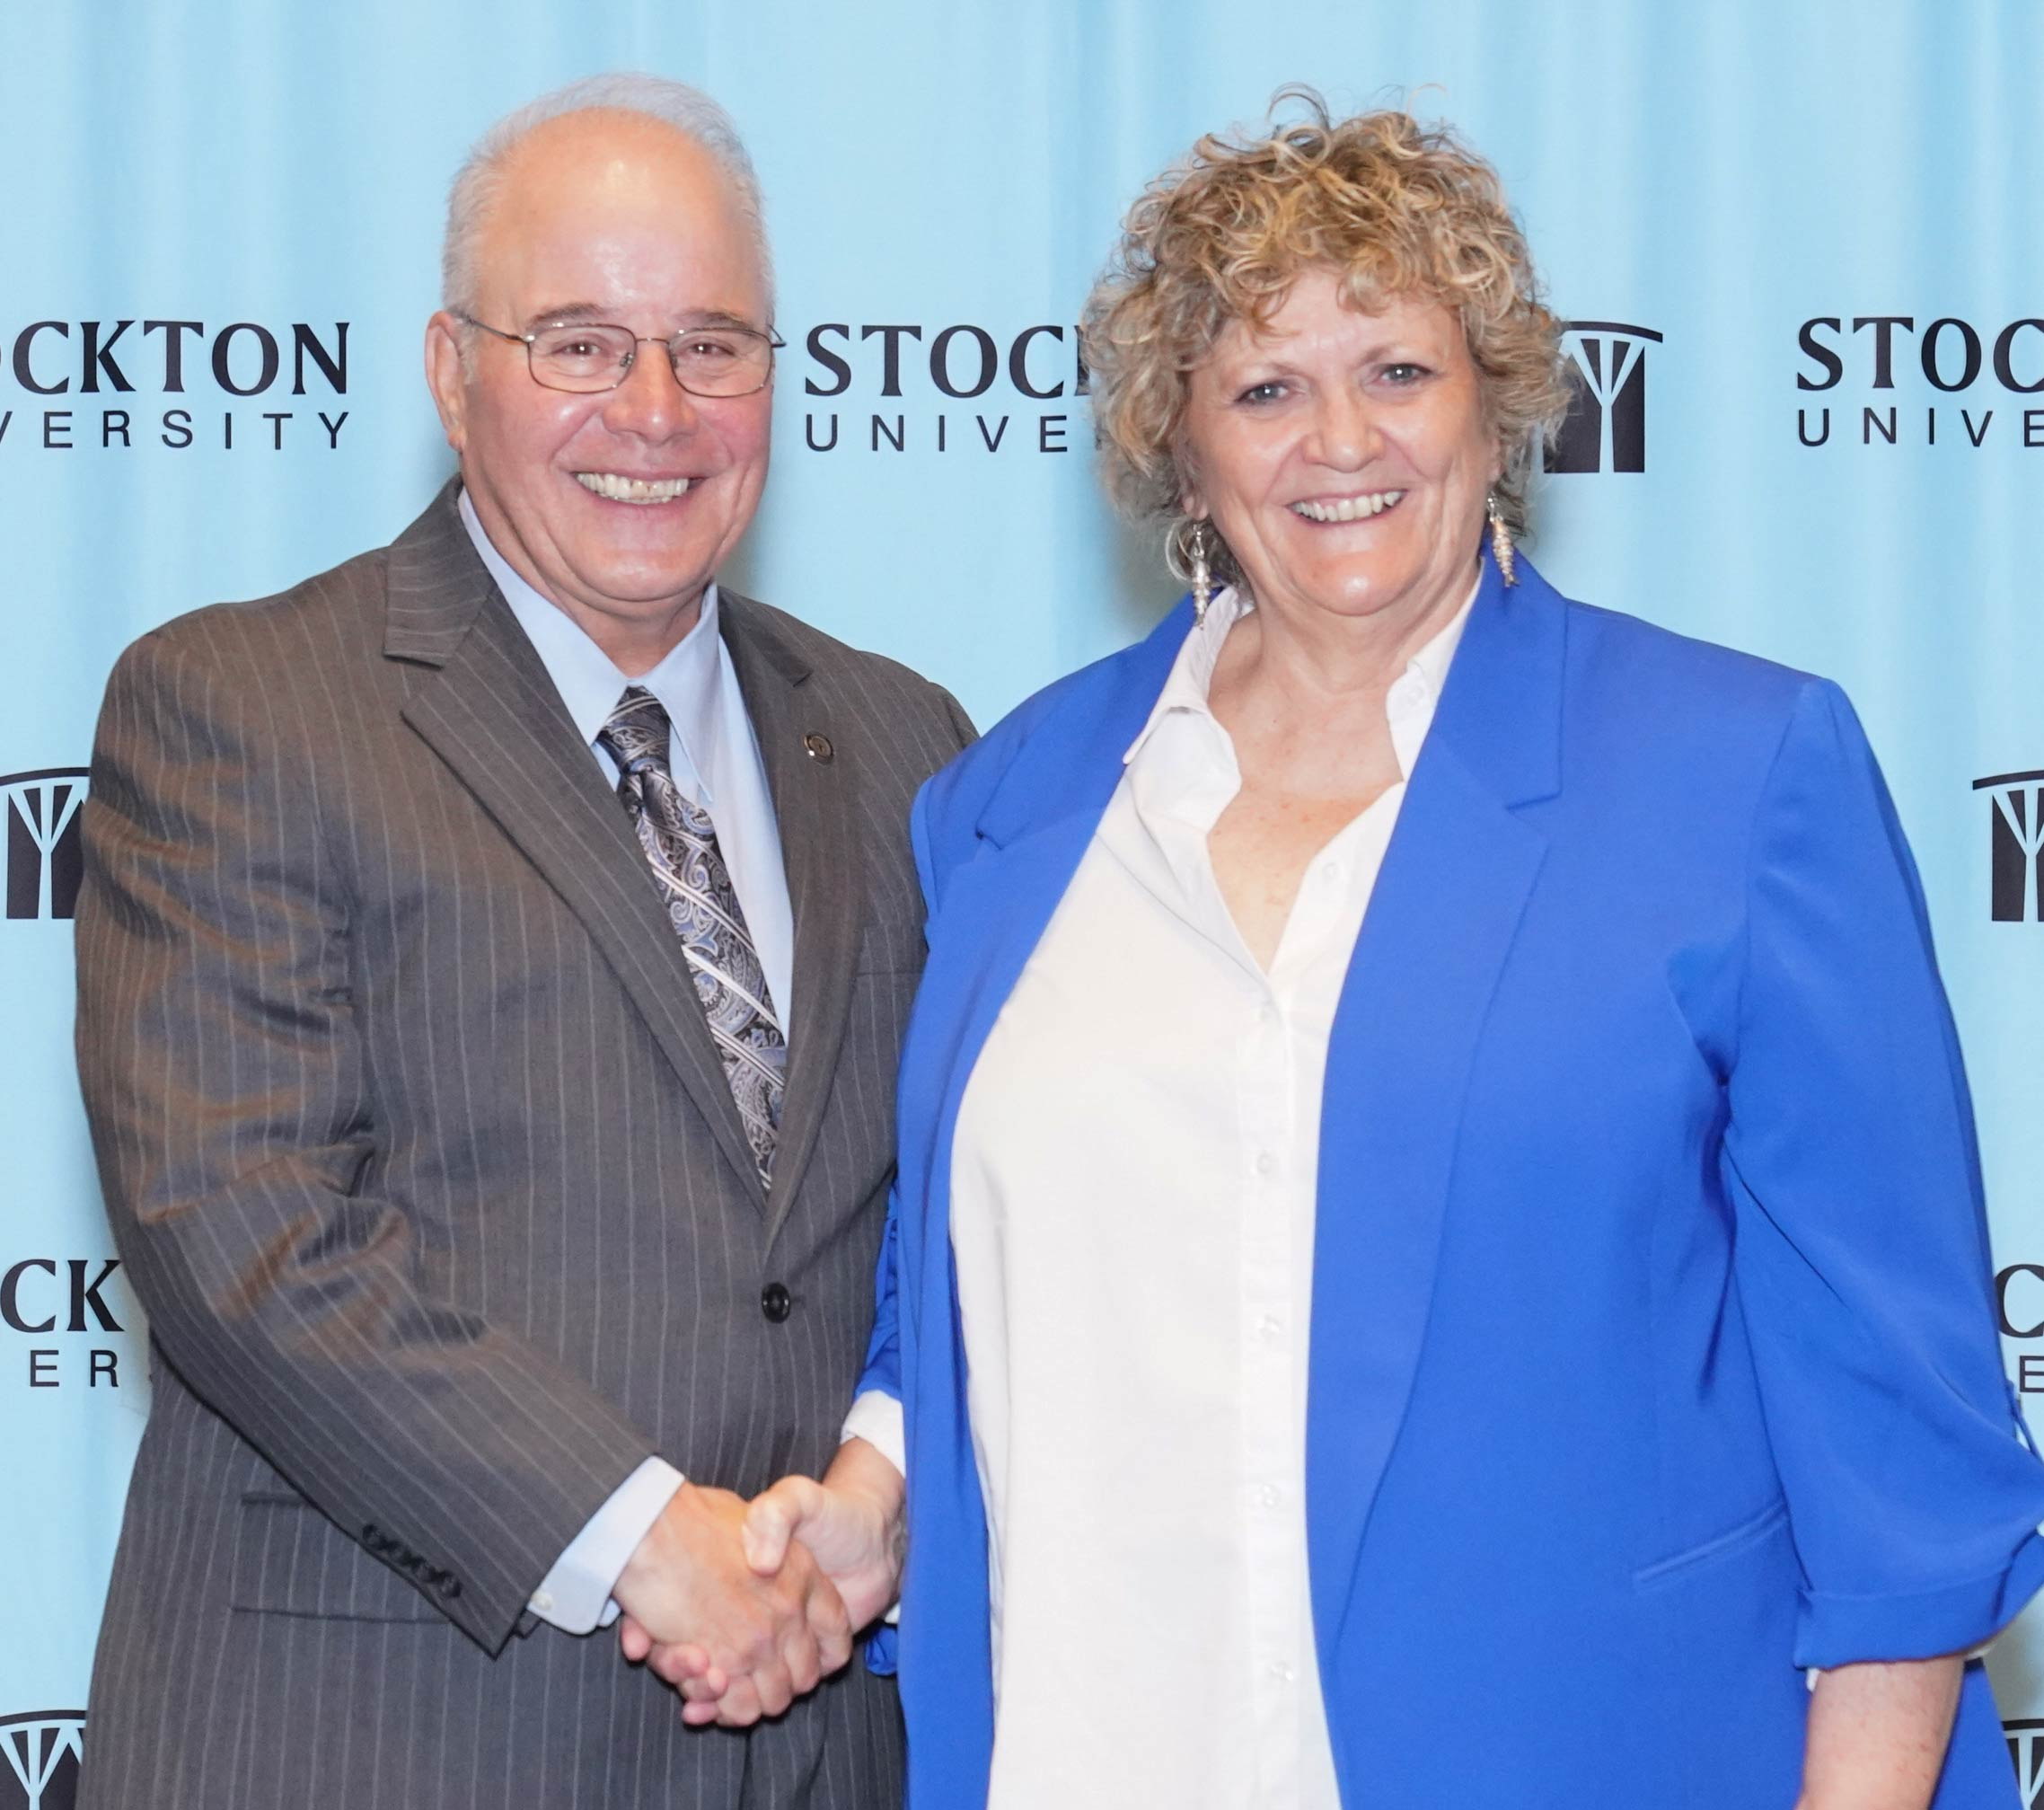 President Kesselman and Patricia Weeks